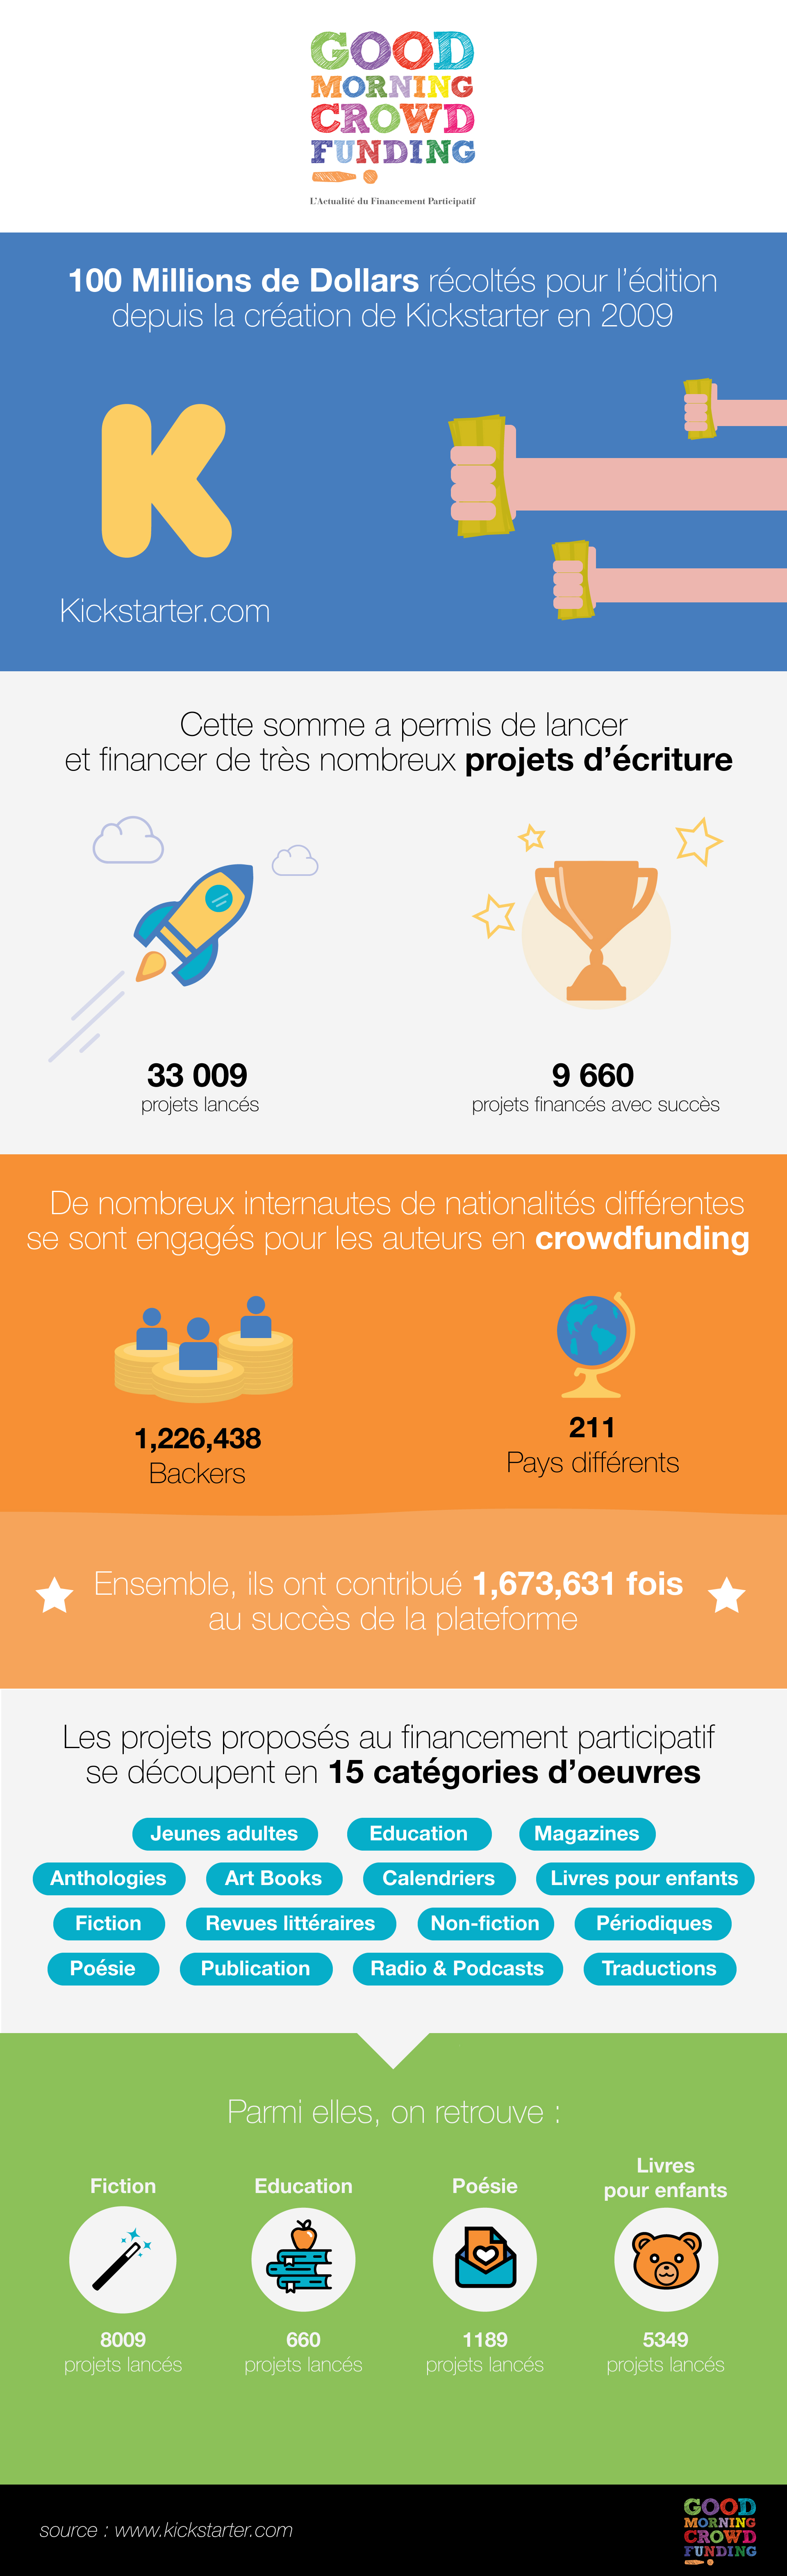 infographie_GMCF_02